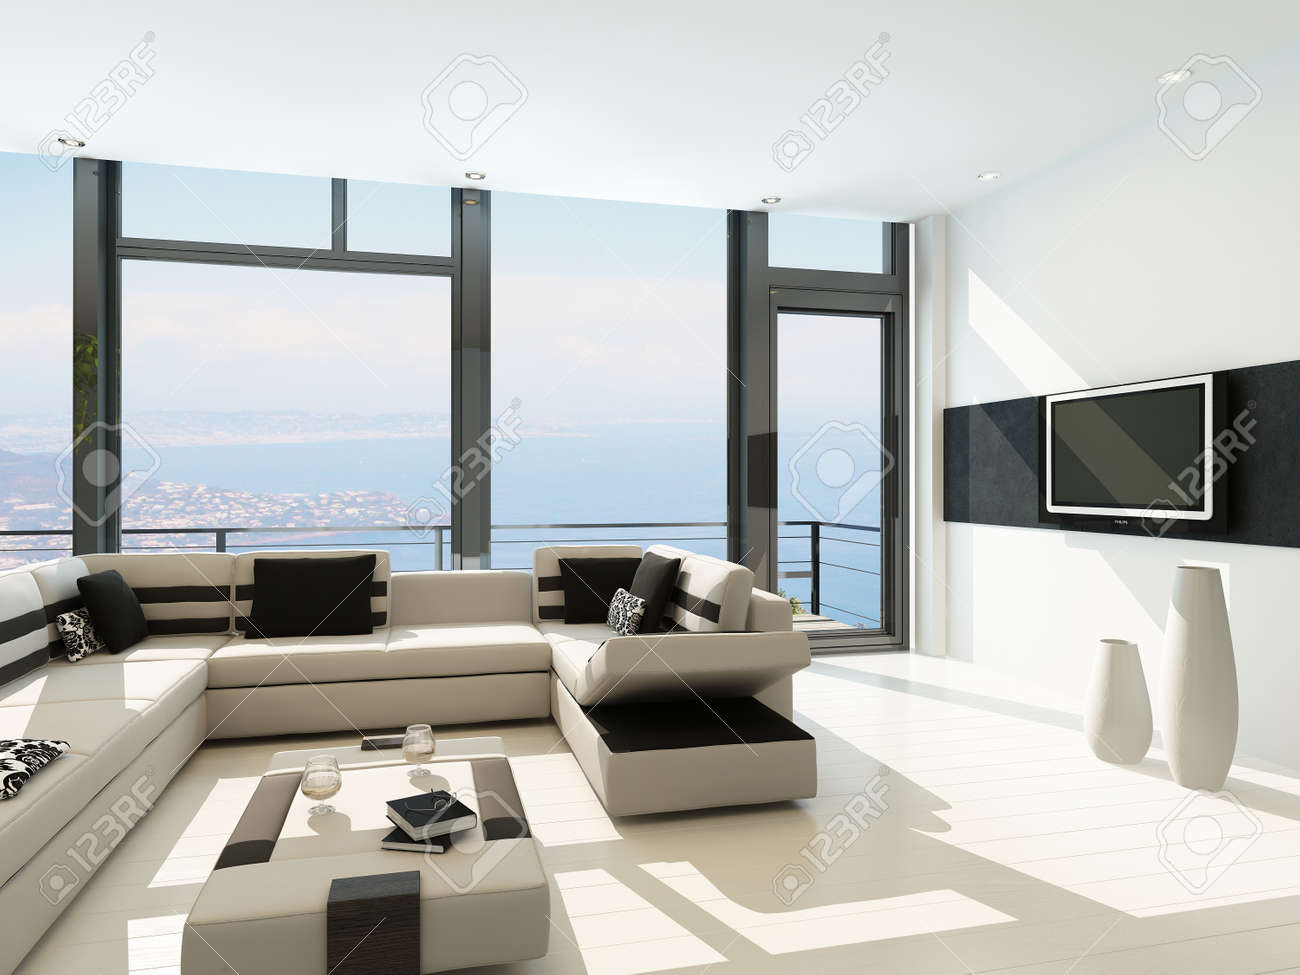 Modern White Living Room Interior With Splendid Seascape View Stock ...